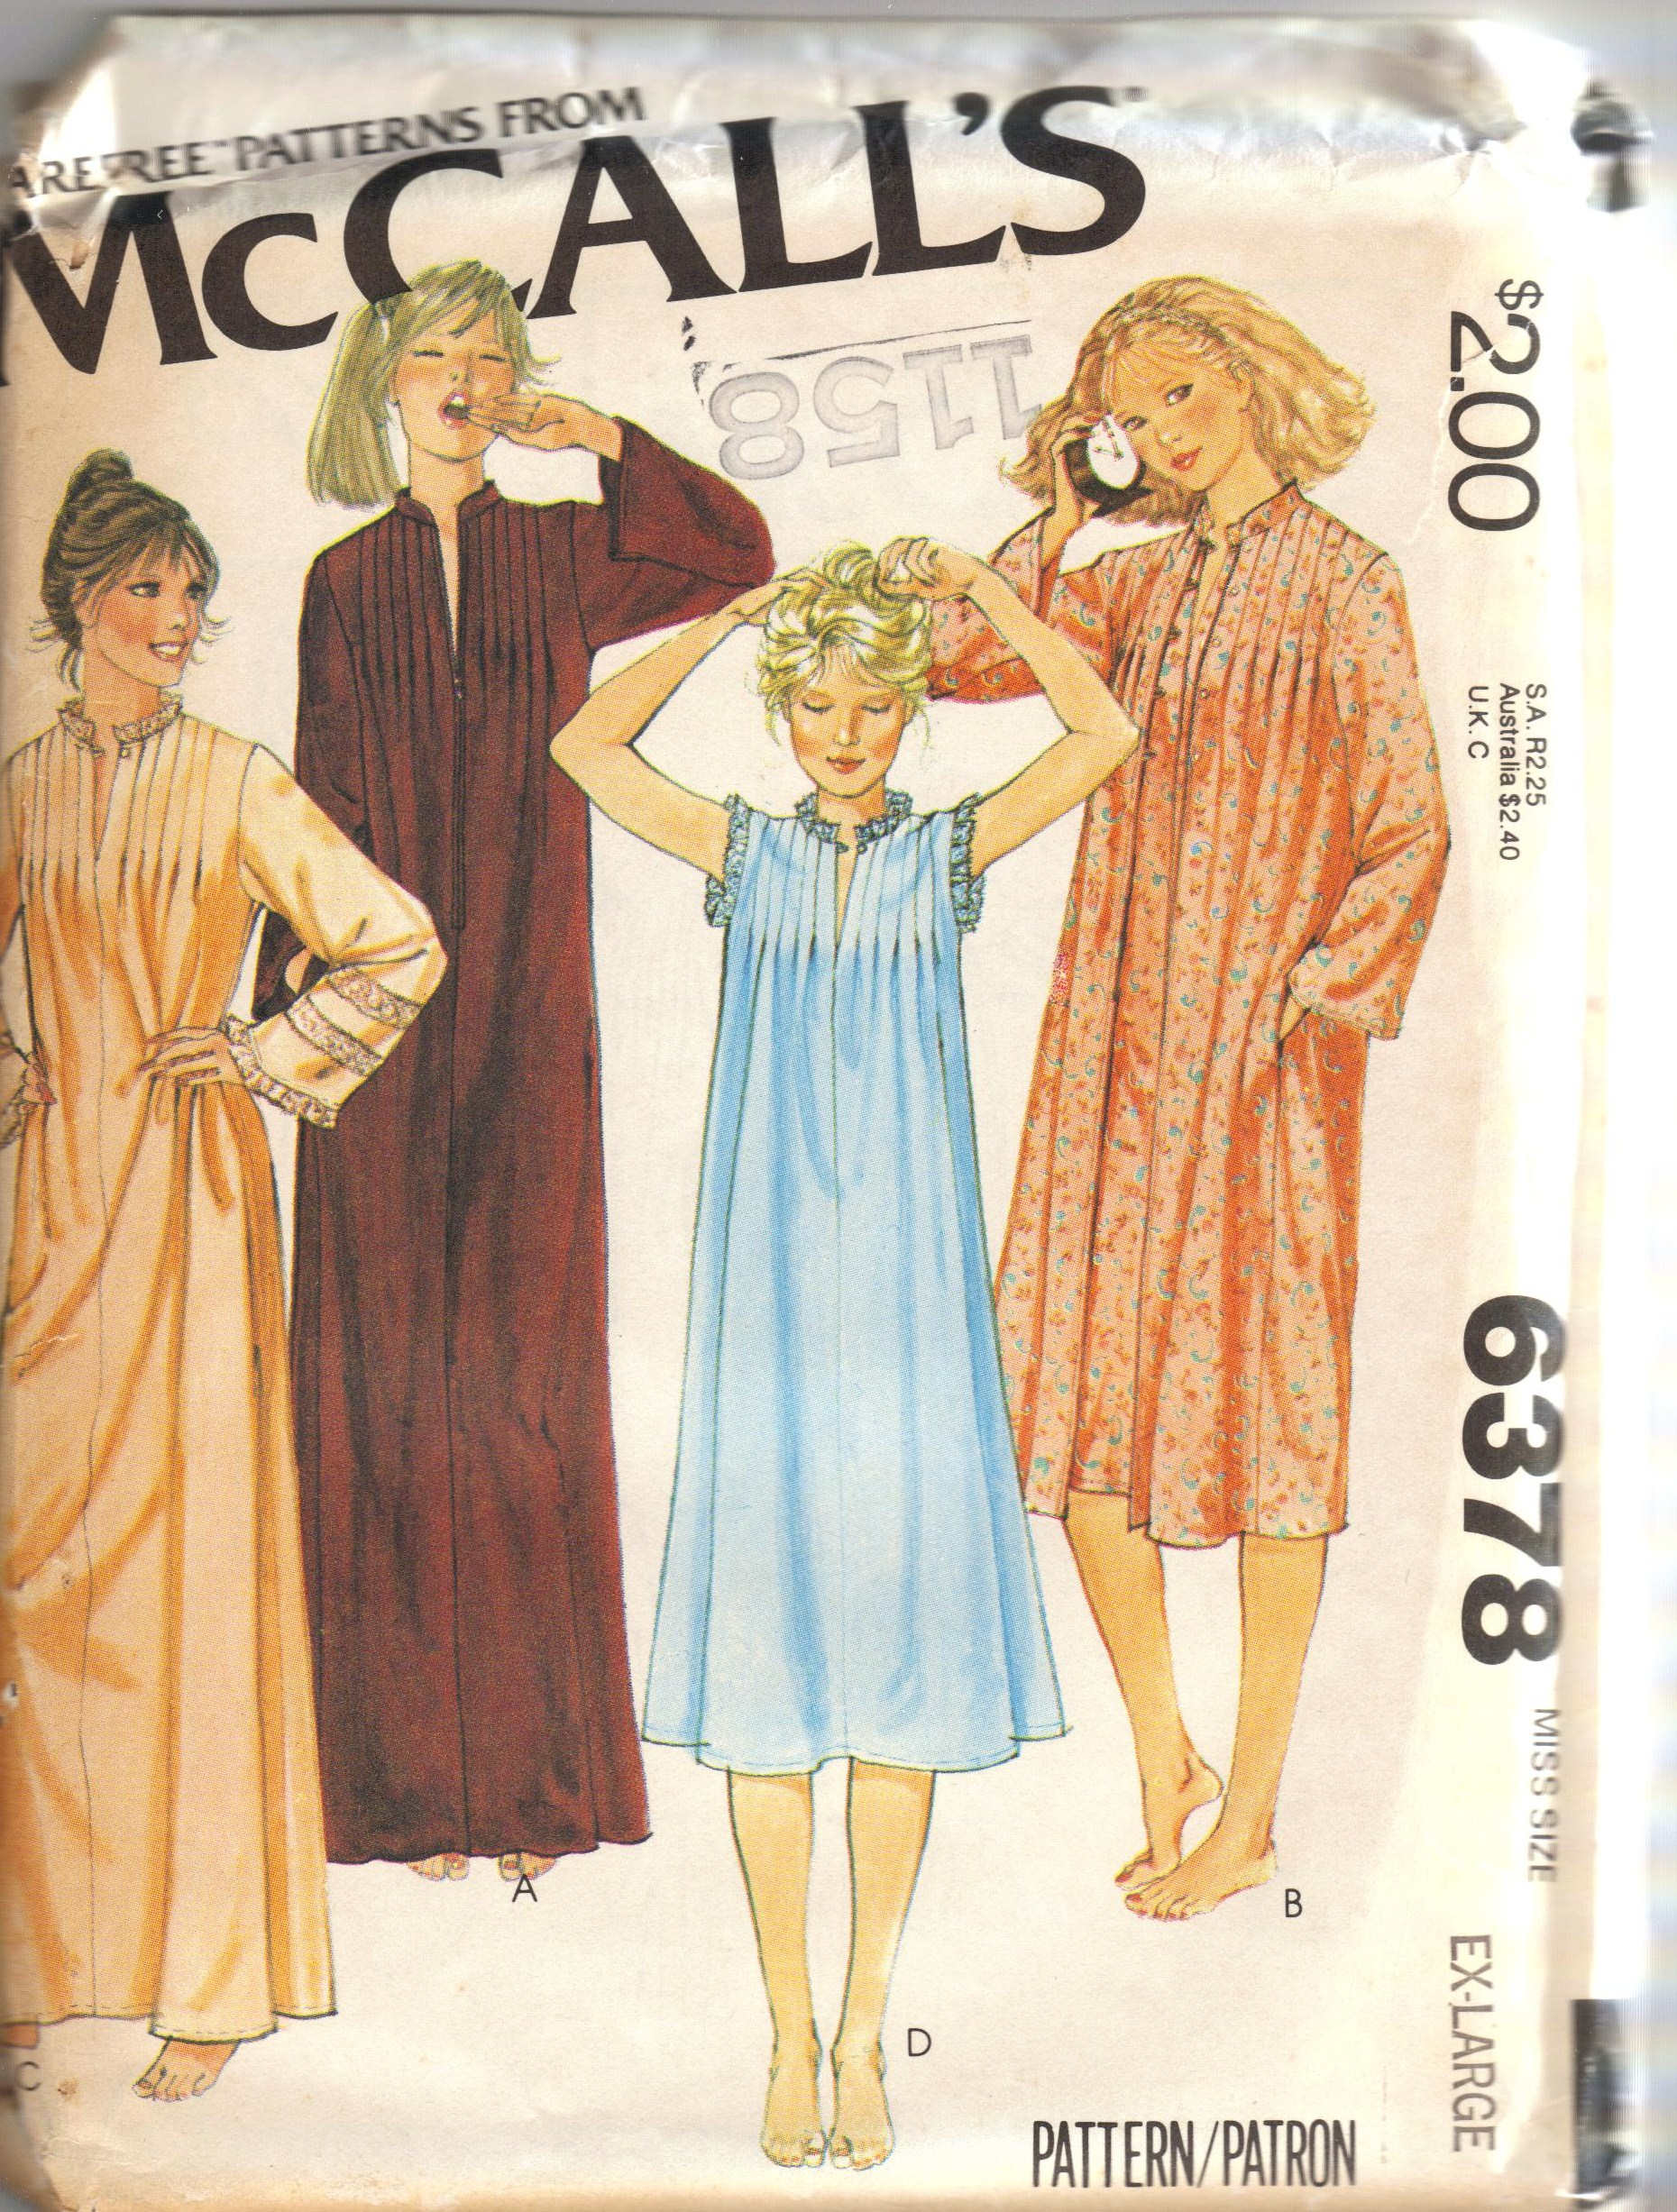 Mccalls 6378 vintage sewing patterns fandom powered by wikia m 6378 jeuxipadfo Gallery